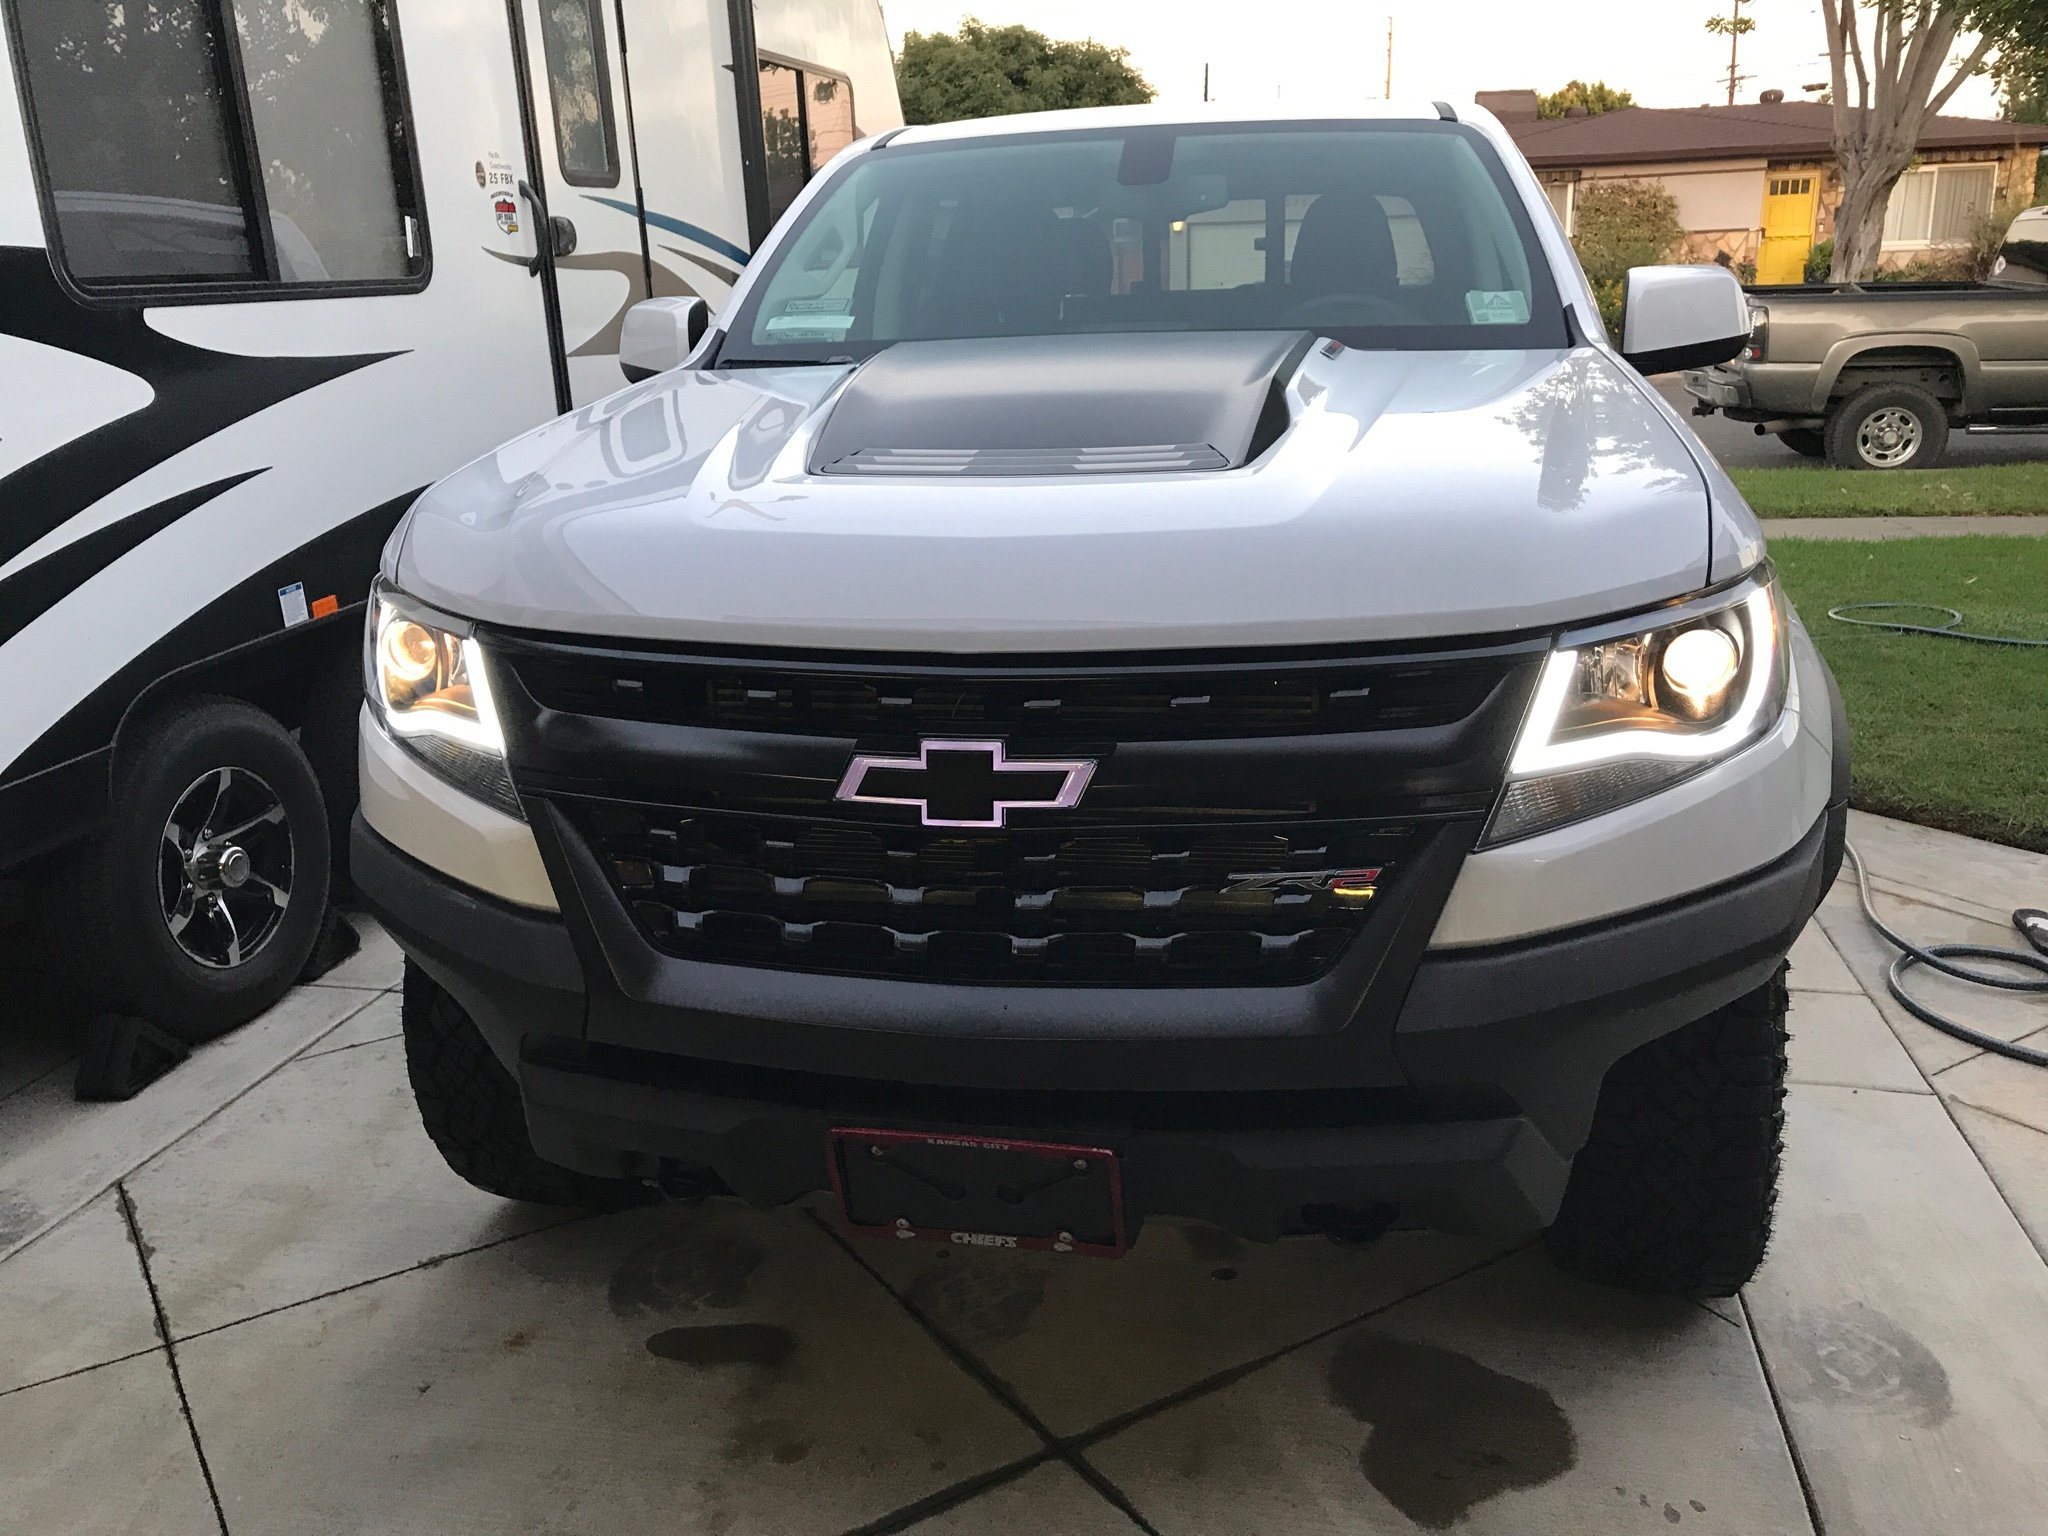 Anzo Headlight Install Question For Zr2 Chevy Colorado